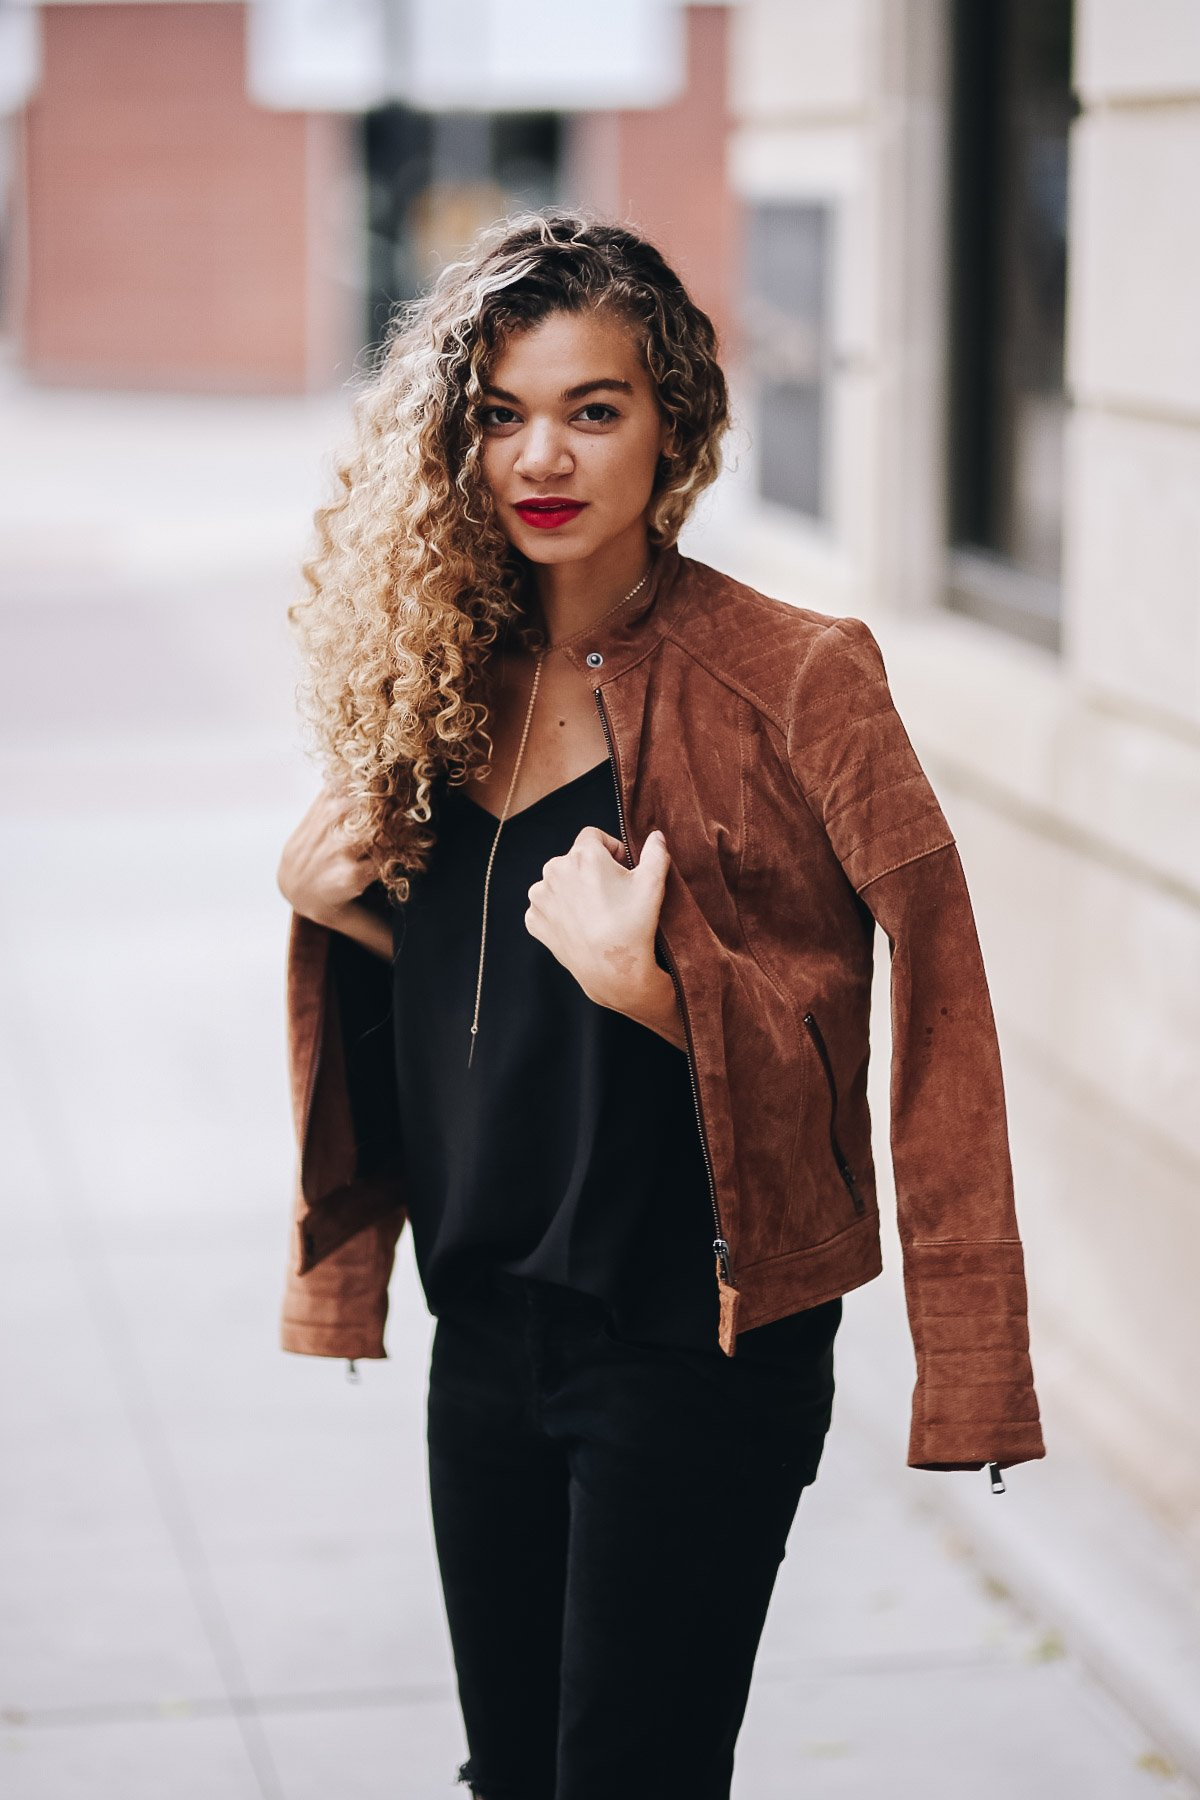 Date Night Outfit Idea + Tips - My Chic Obsession